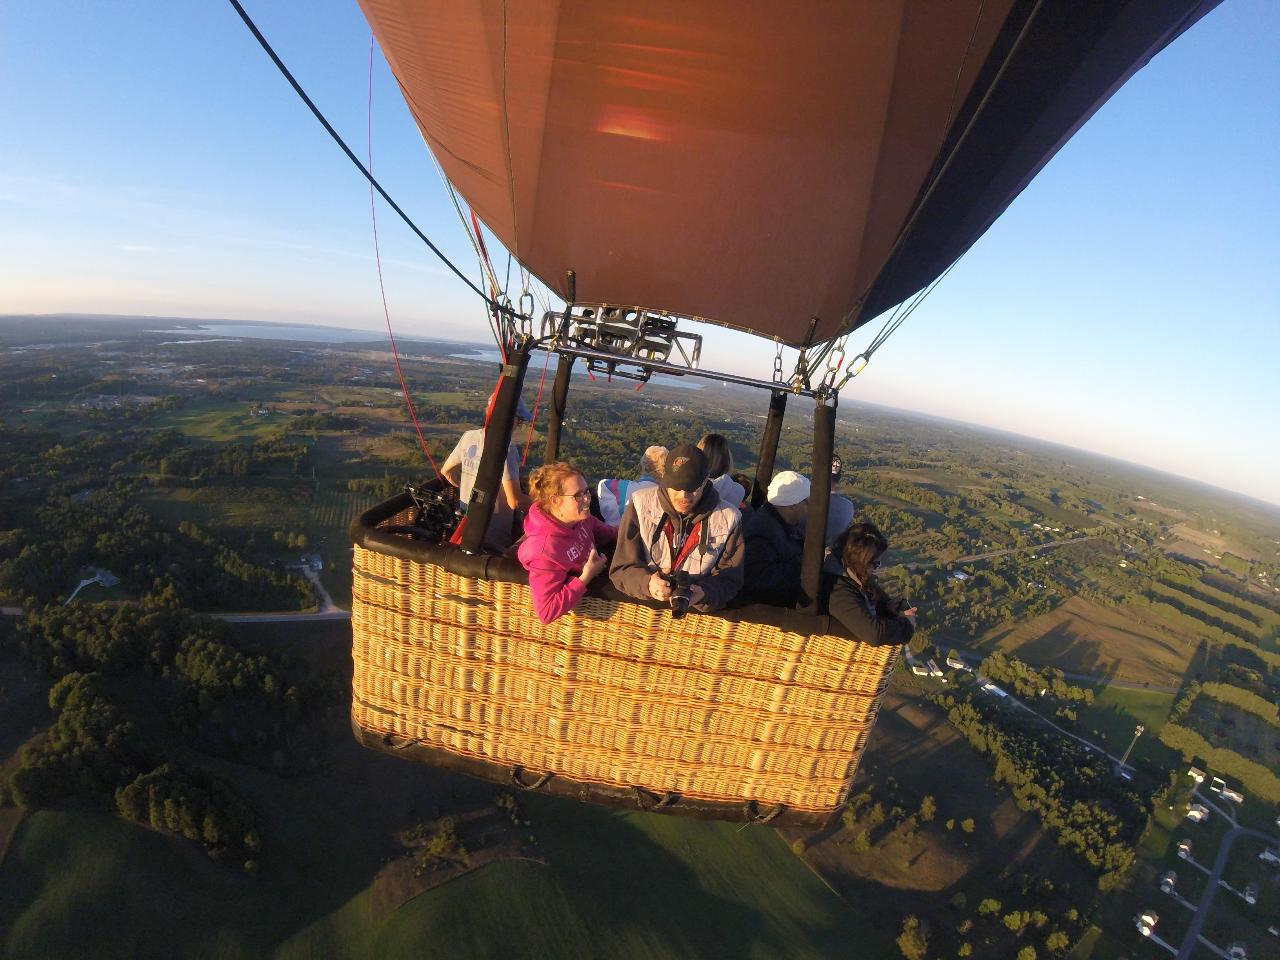 Weekend Private Flight / Large Balloon in Traverse City